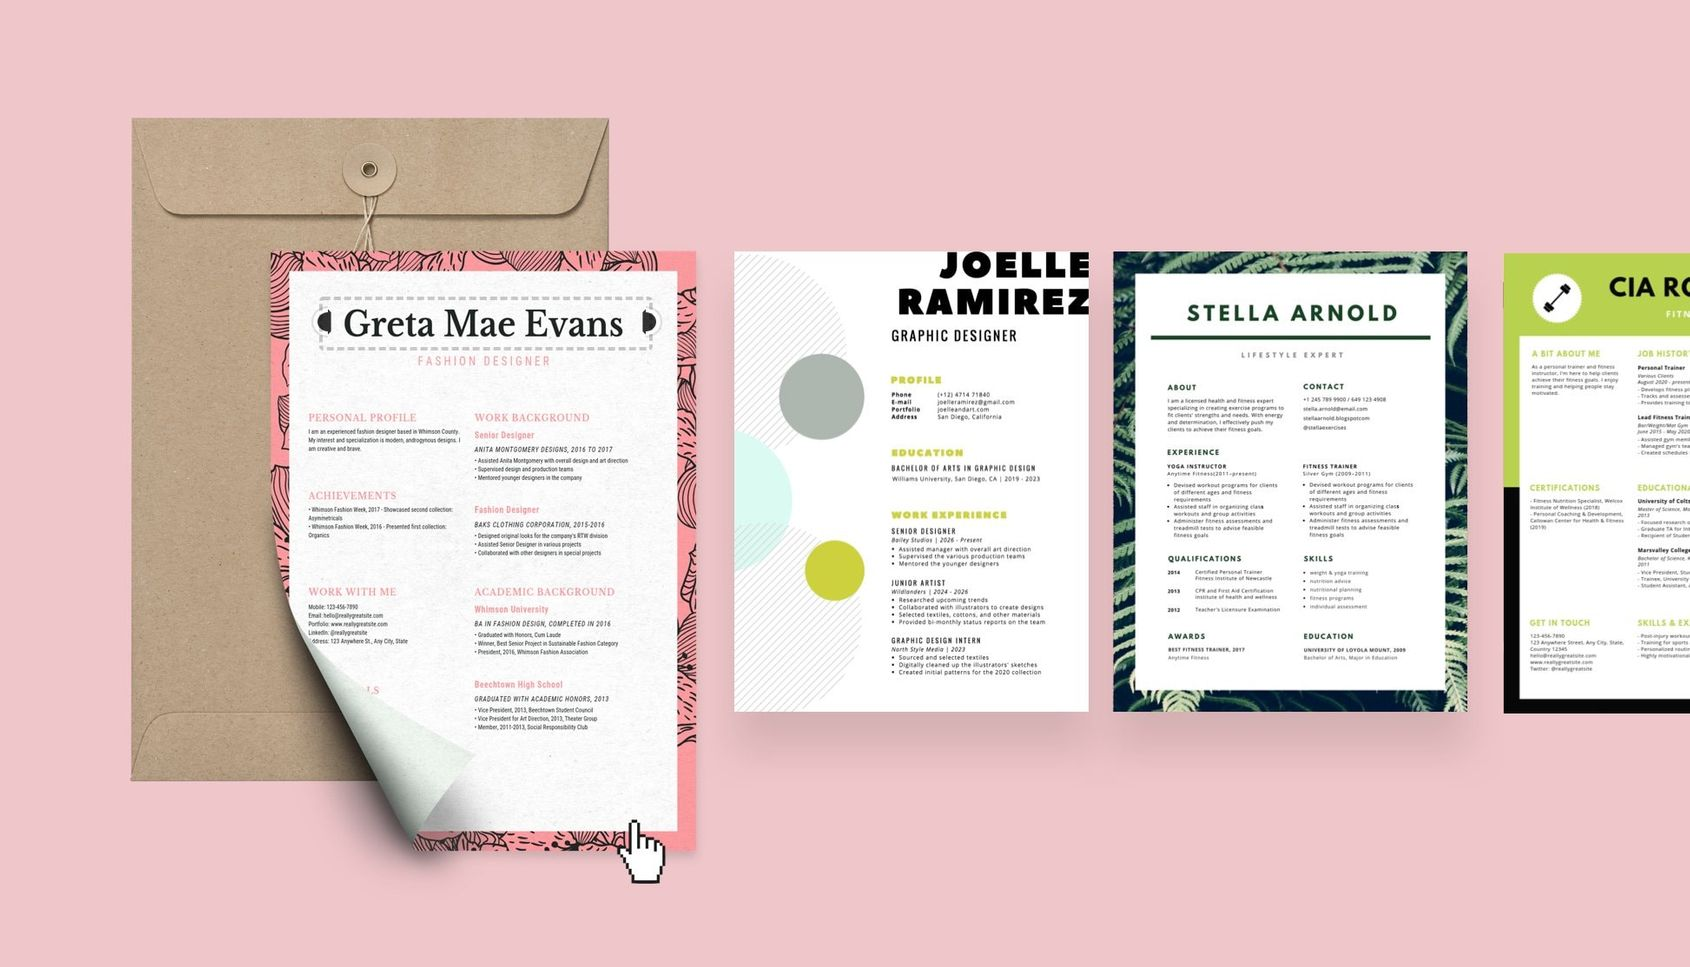 free resume builder design custom in canva make fast and easy professional for cfo Resume Make A Resume Fast And Easy